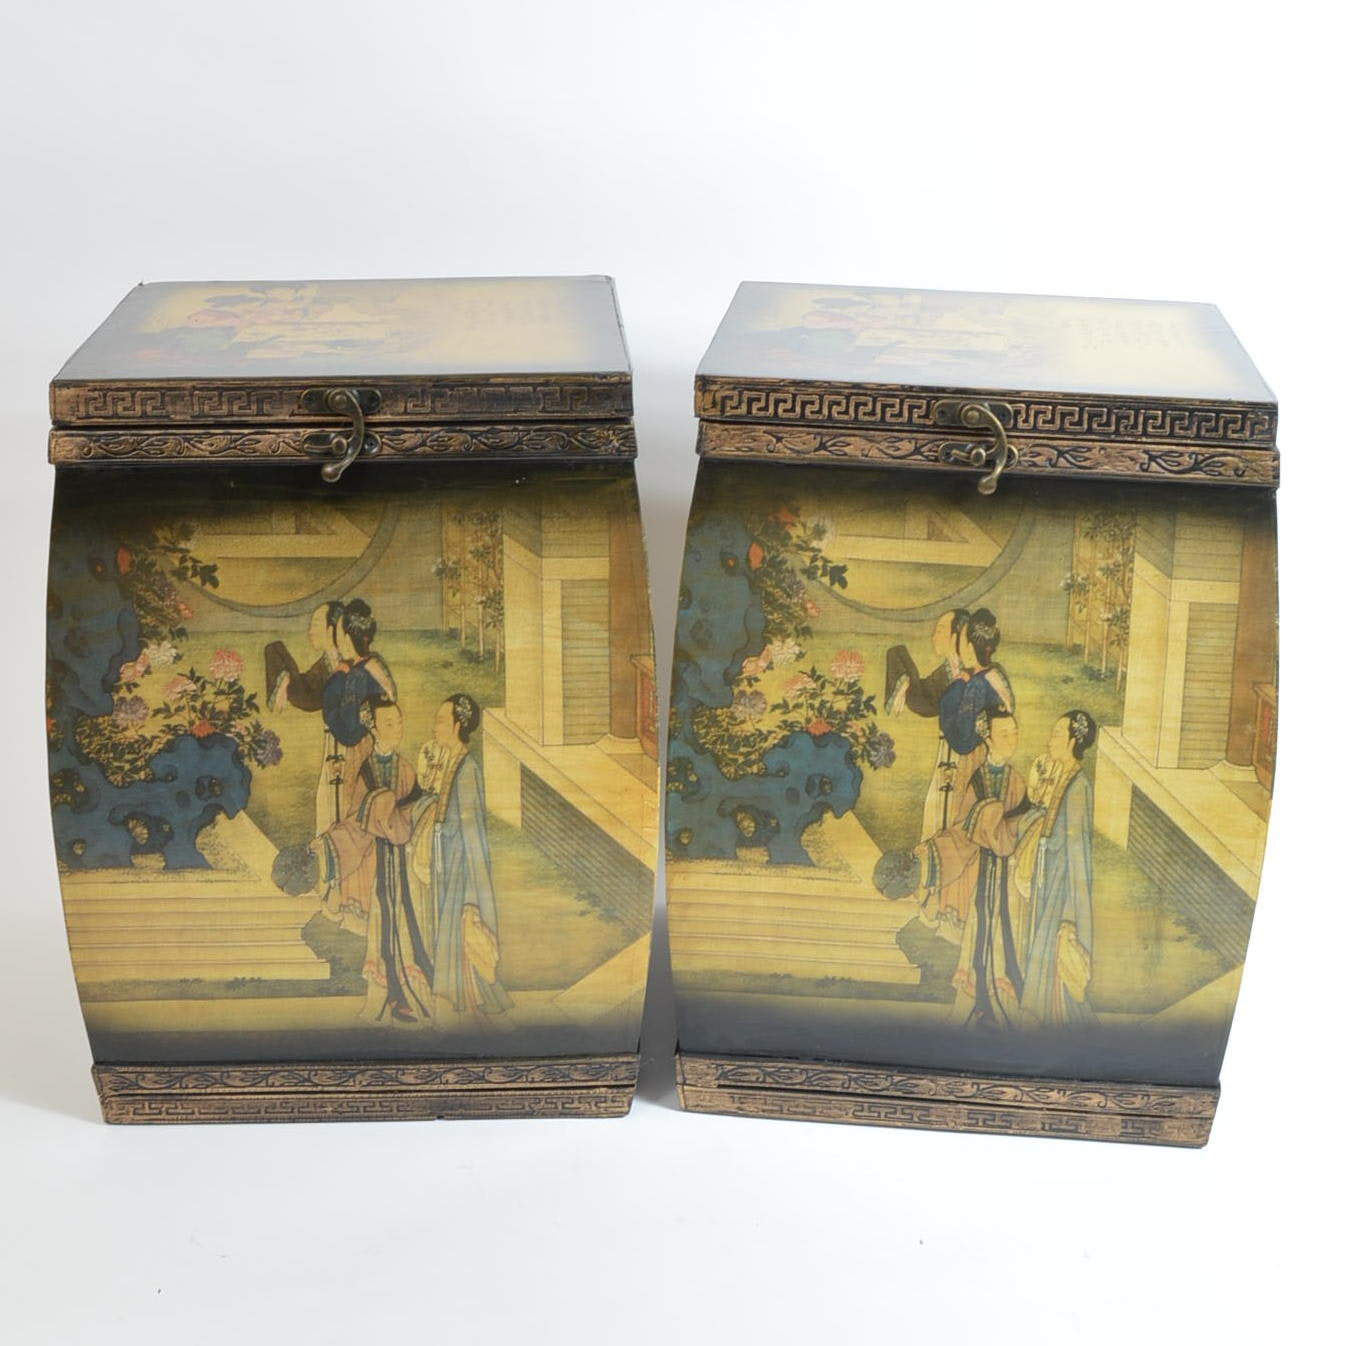 Chinese Inspired Storage Boxes